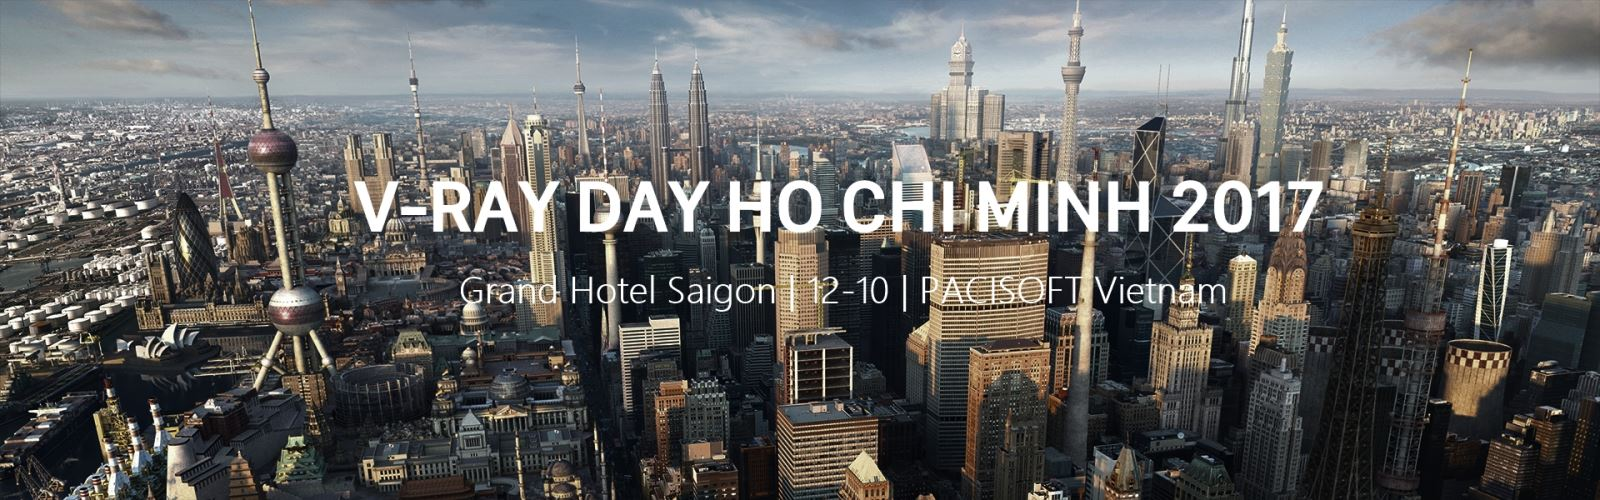 V-Ray Day Ho Chi Minh 2017